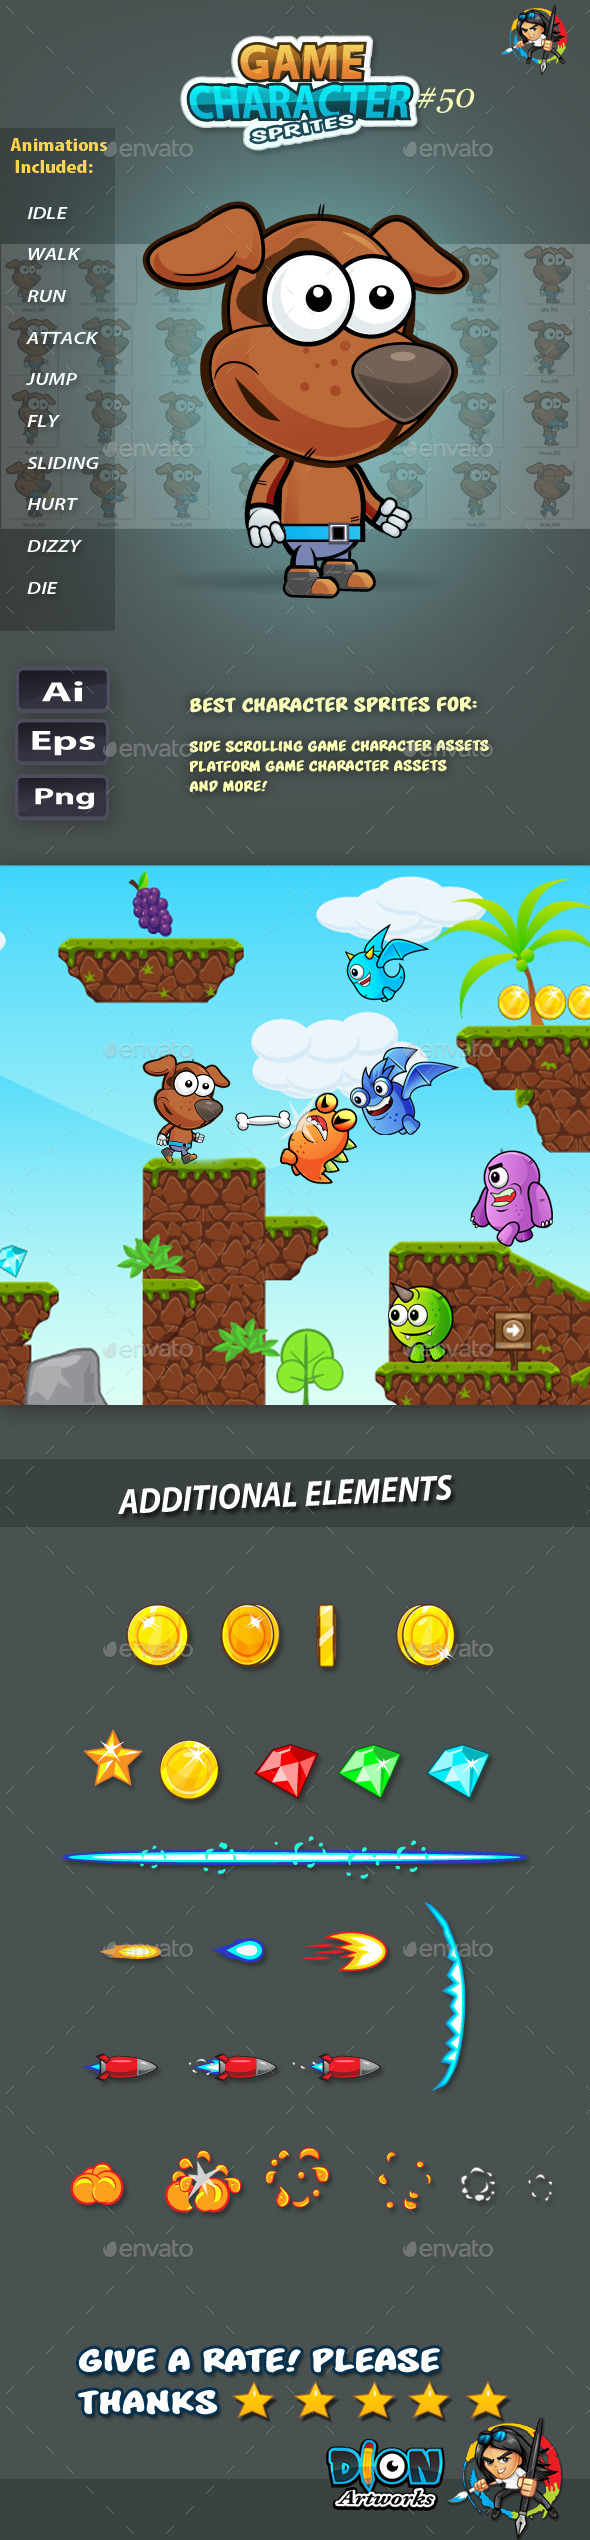 GraphicRiver Dogie 2D Game Character Sprites 50 11743419